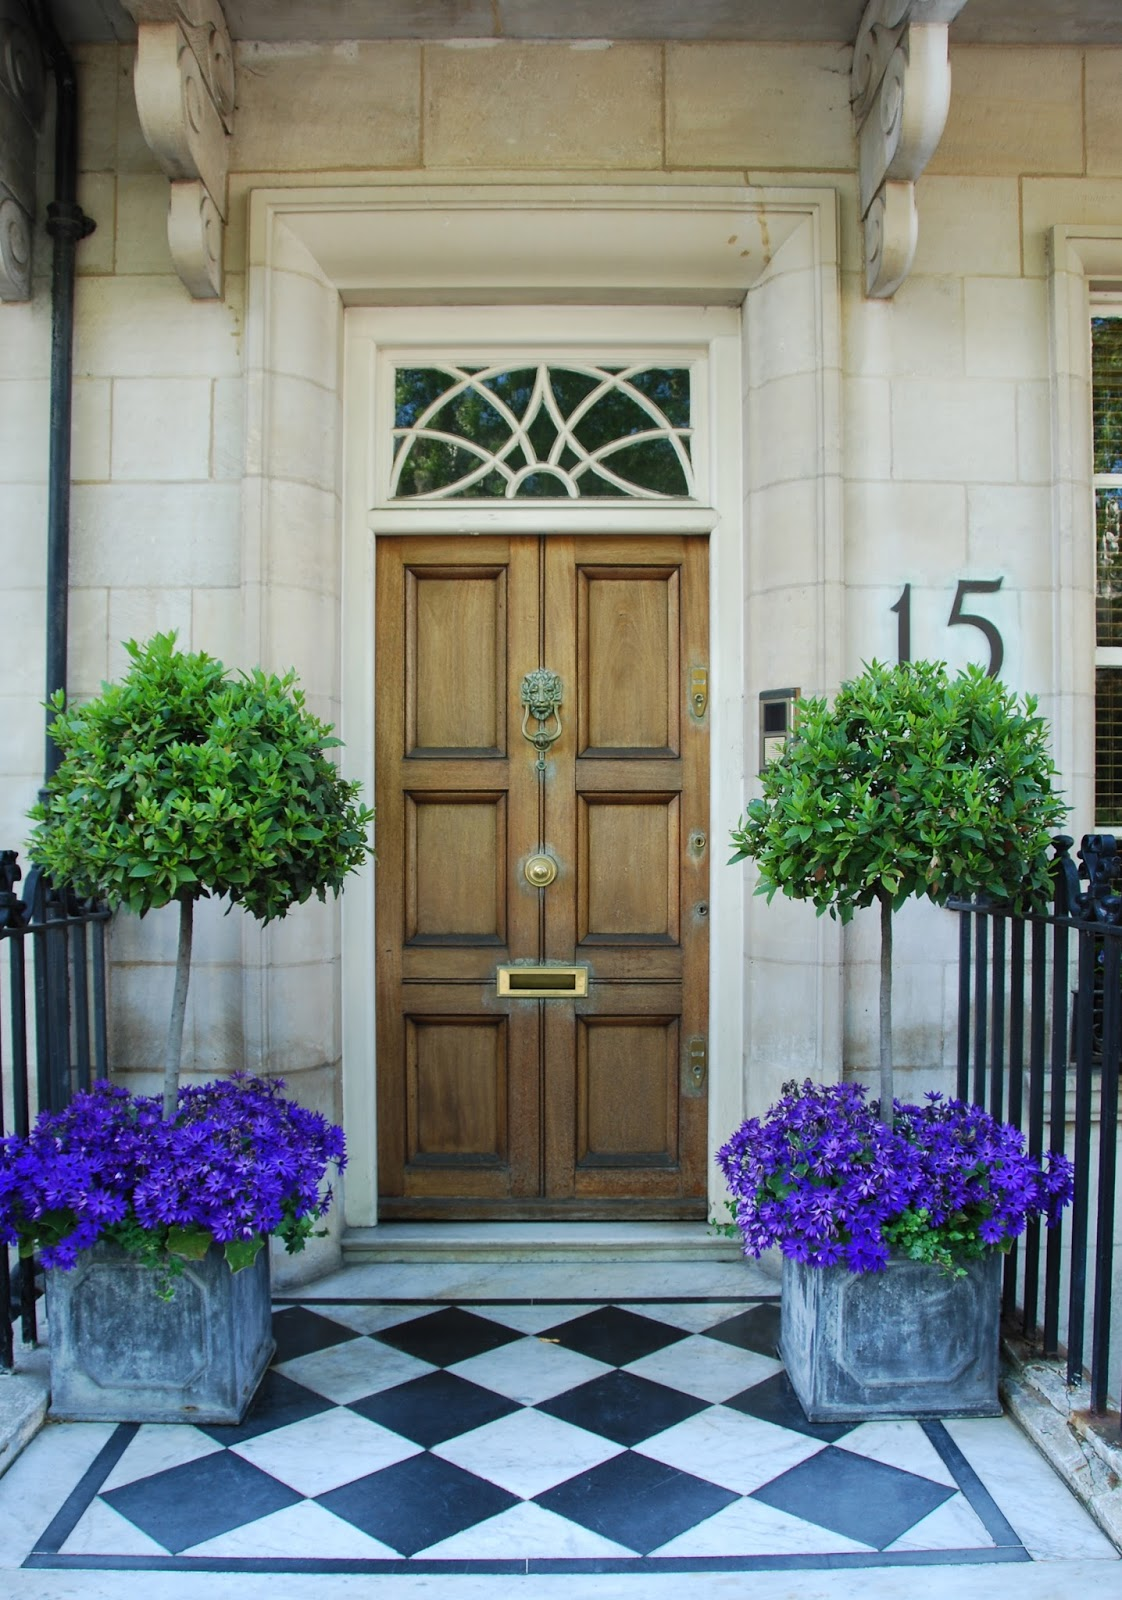 40 front door flower pots for a good first impression for Entryway garden designs